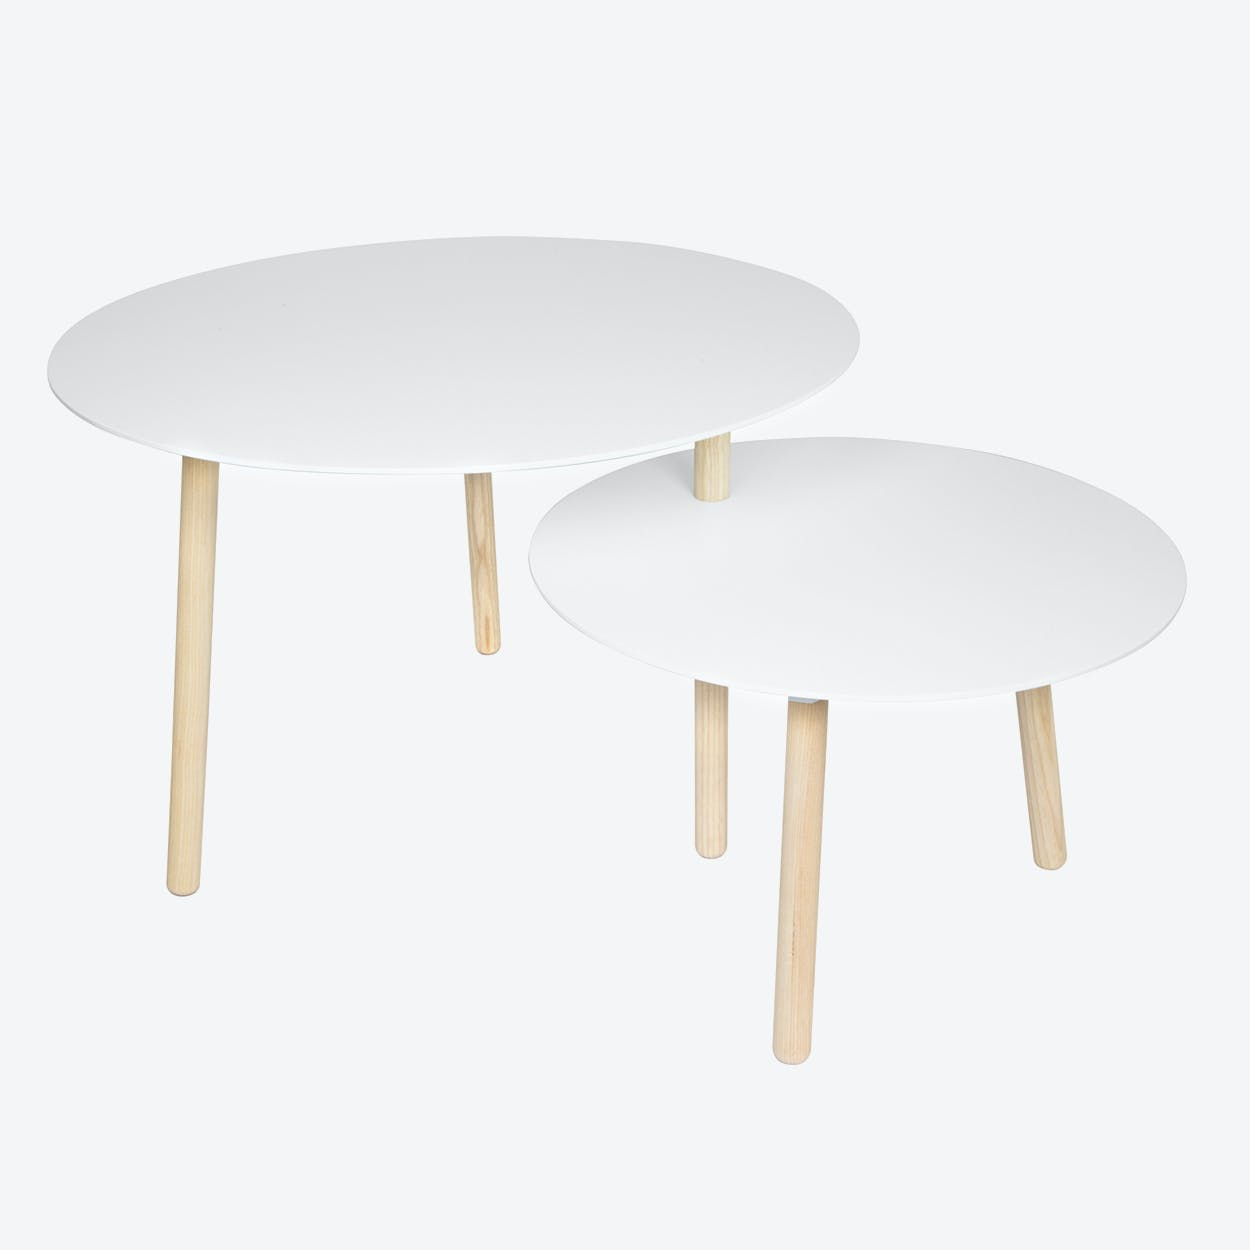 Hobstad Table in Natural Ash & Lacqured (White) Wood